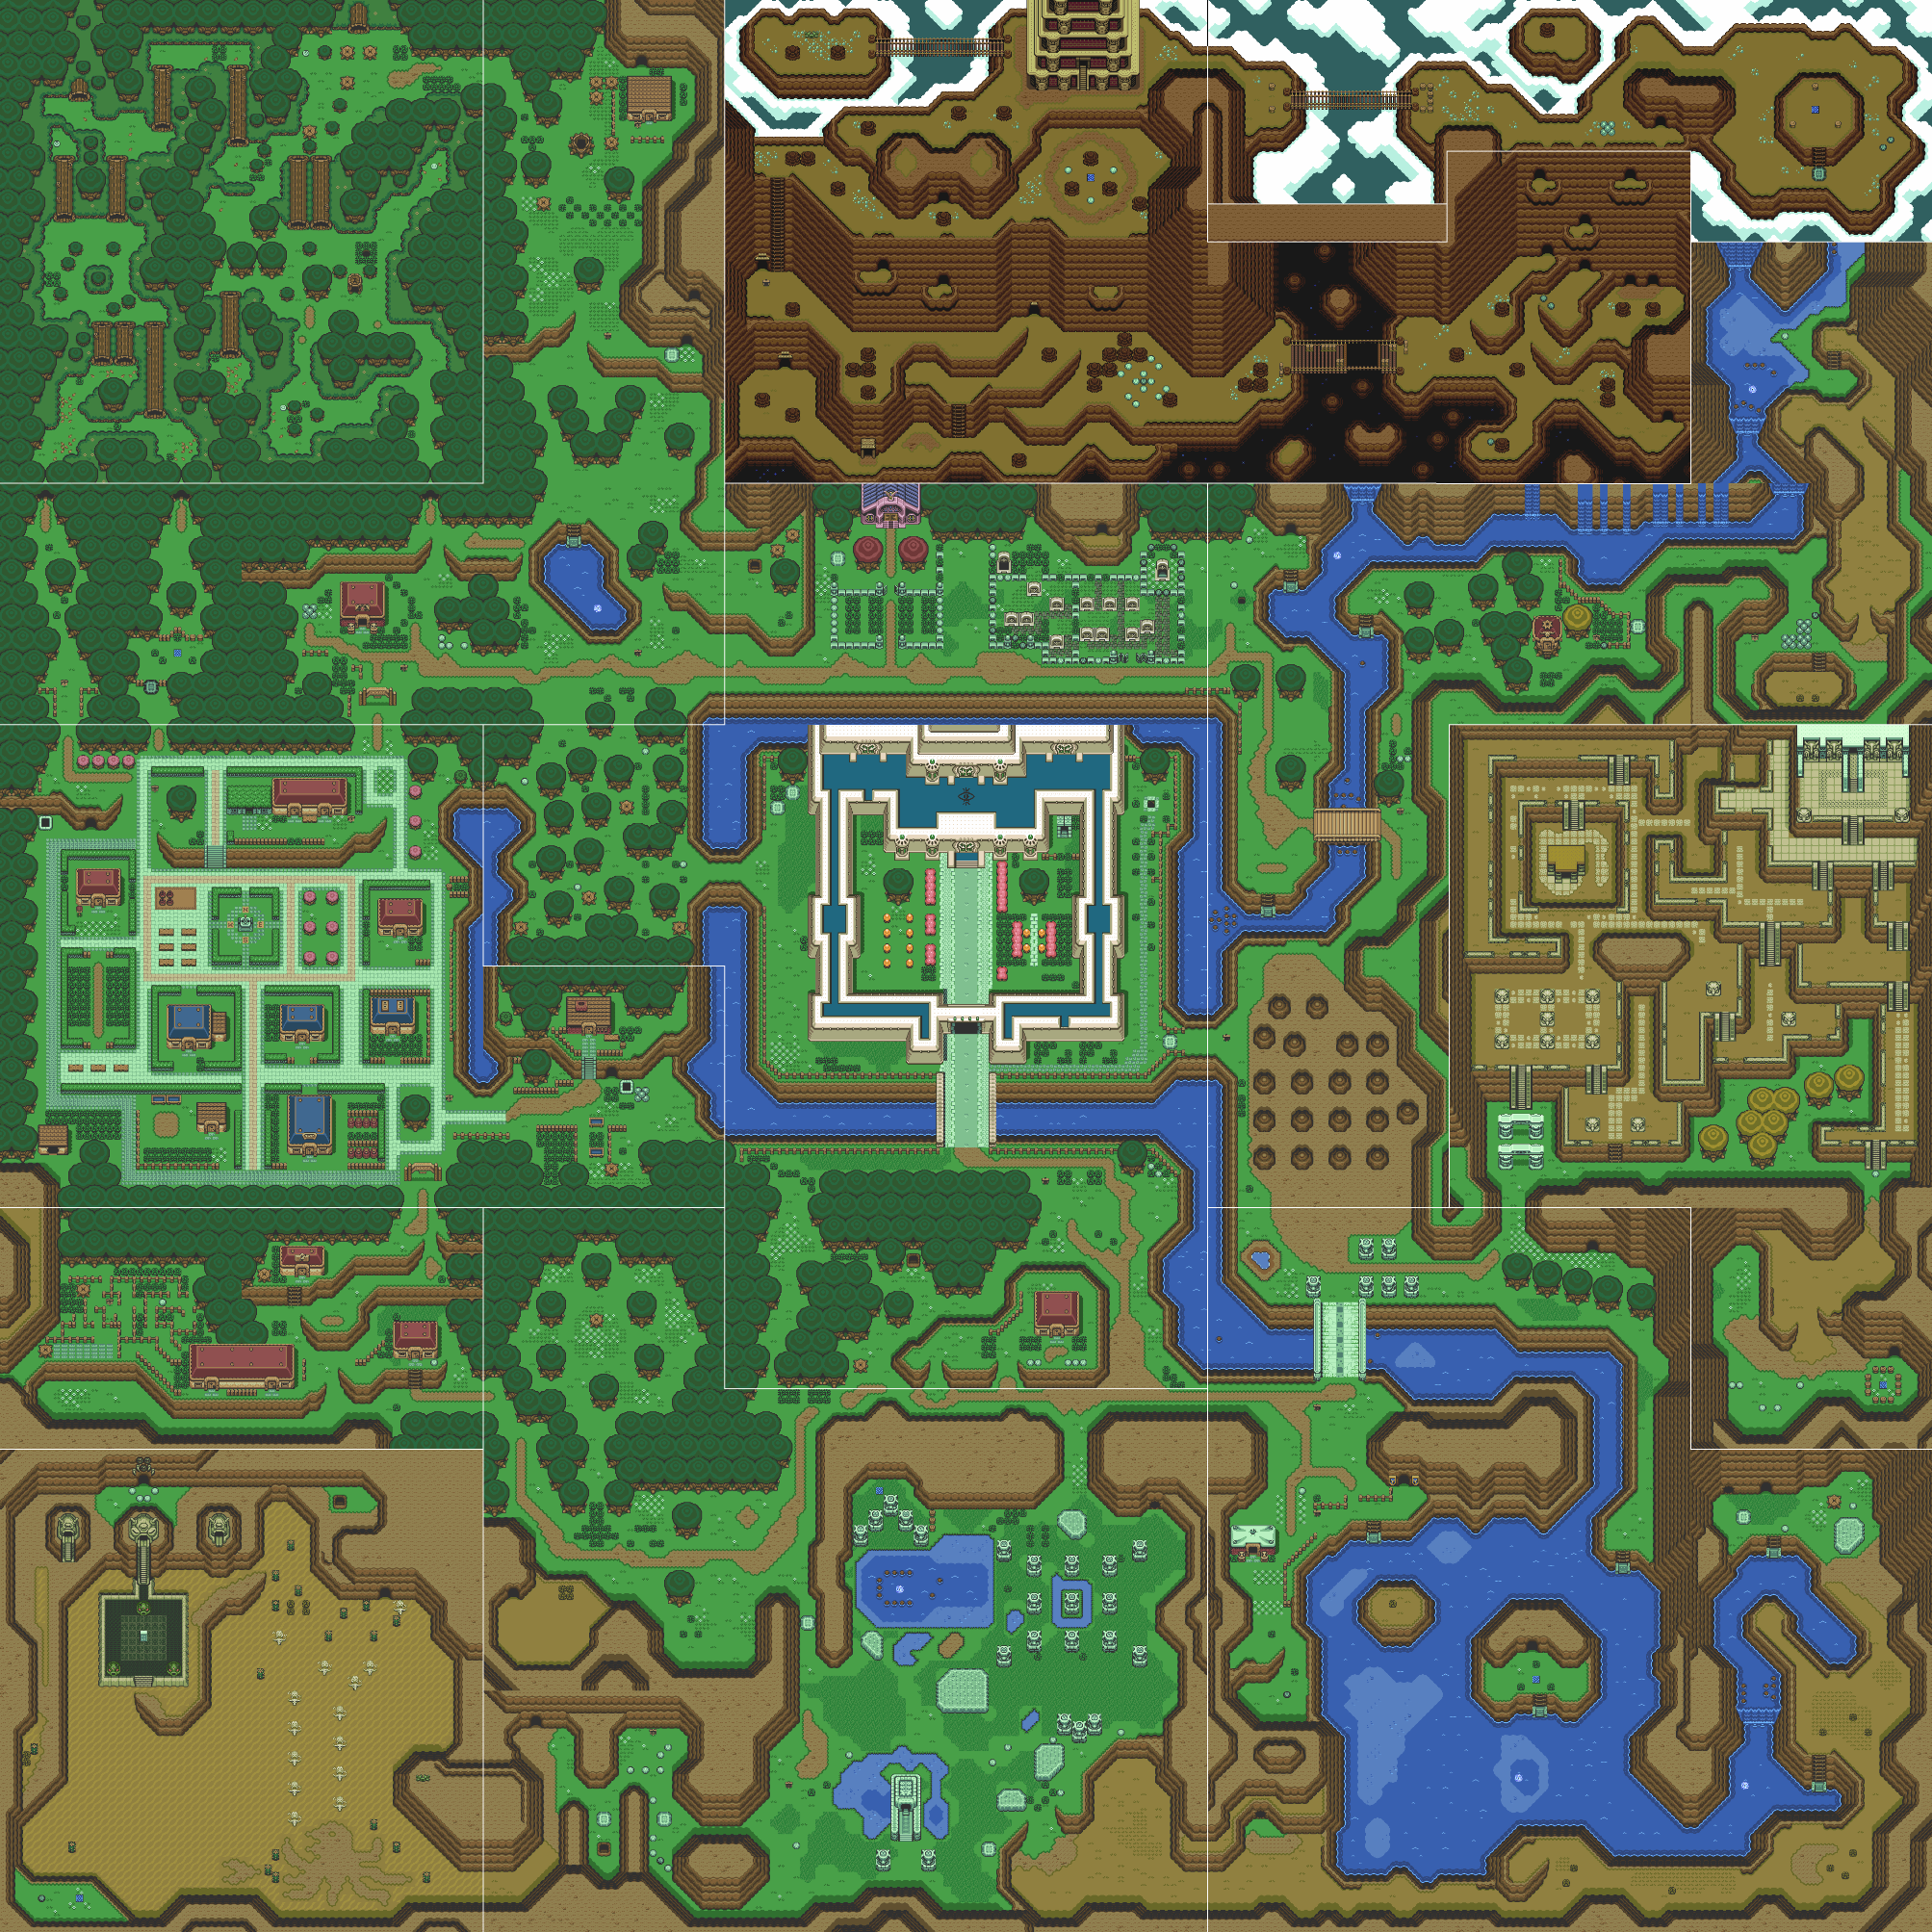 The overworld map of Hyrule 's Light World from The Legend of Zelda: A